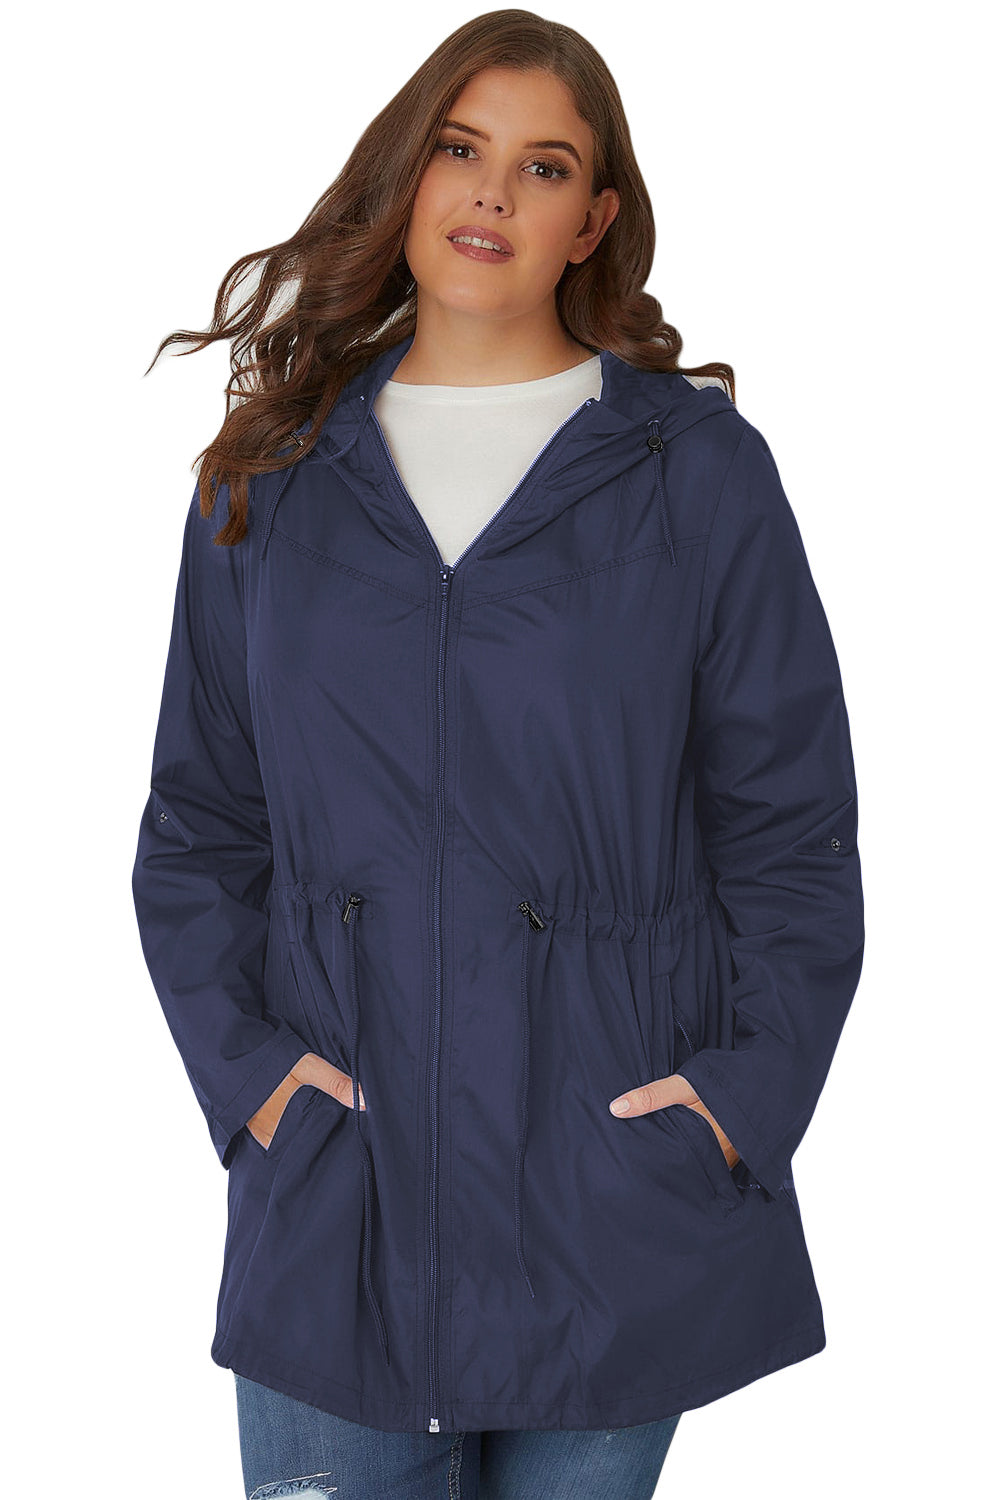 Navy Blue Hooded Ladies Plus Size Parka Jackets